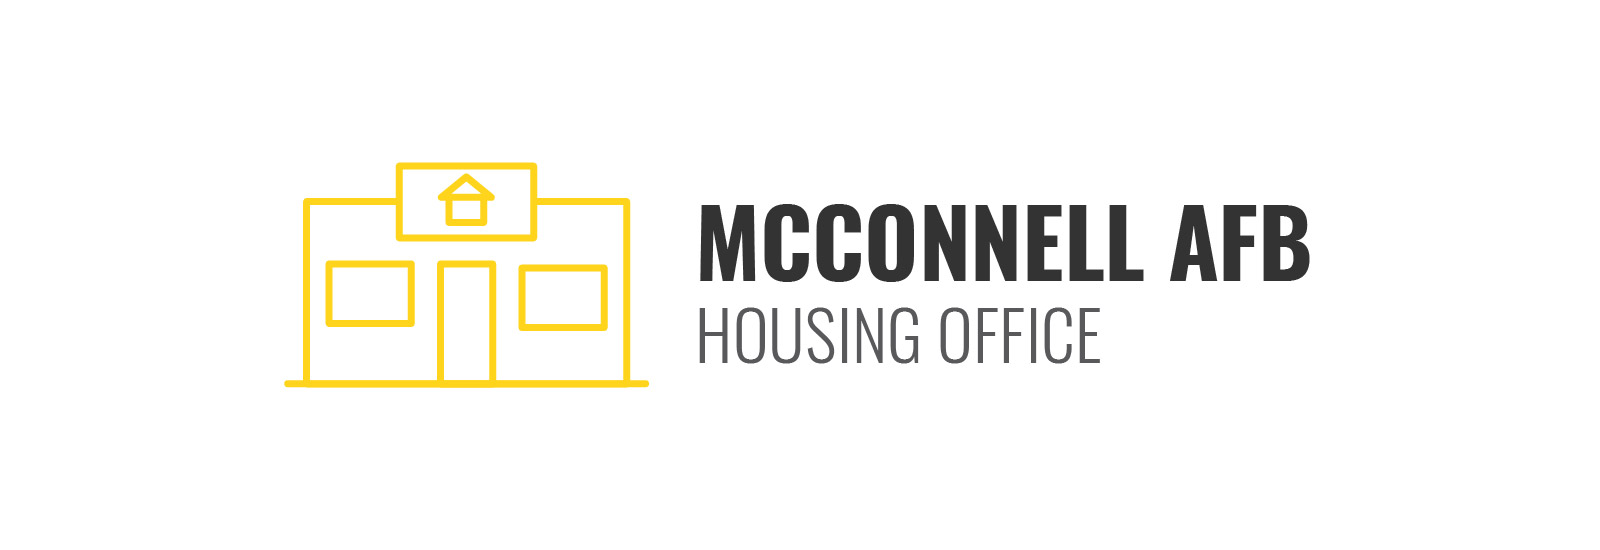 McConnell AFB Housing Office